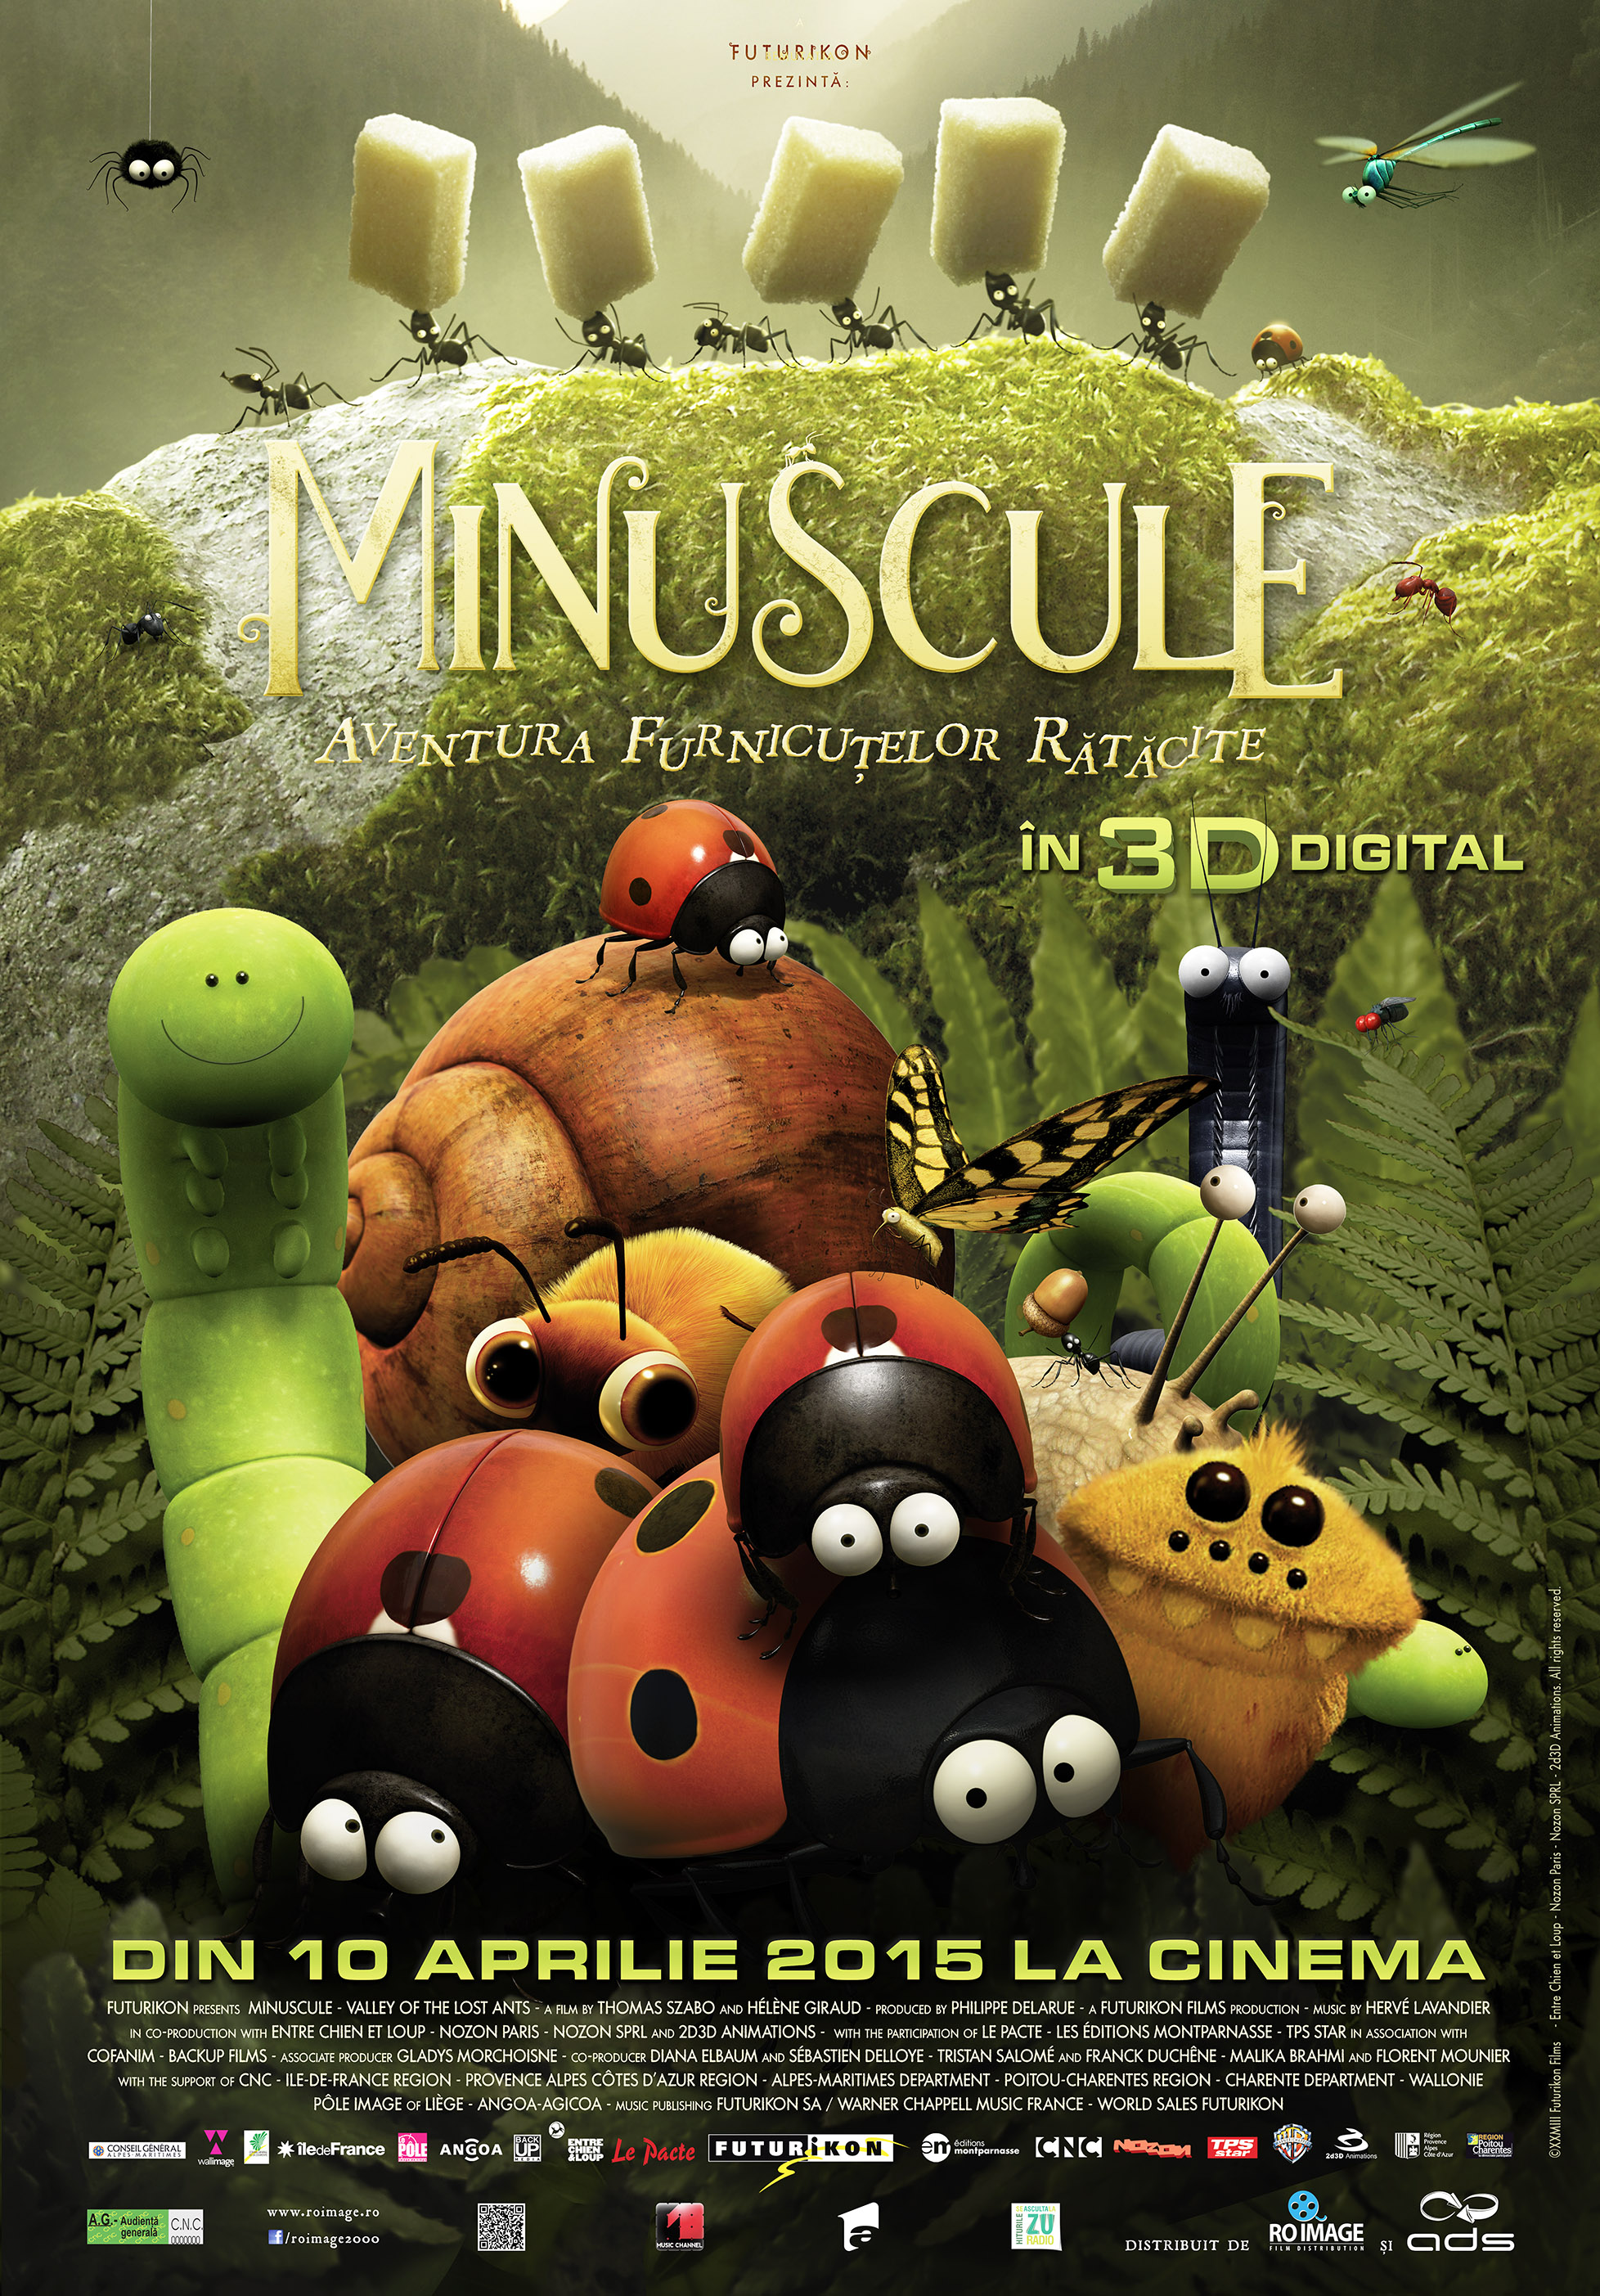 Minuscule: Aventura furnicutelor ratacite – 3D Dublat / Minuscule: Valley of the Lost Ants - 3D